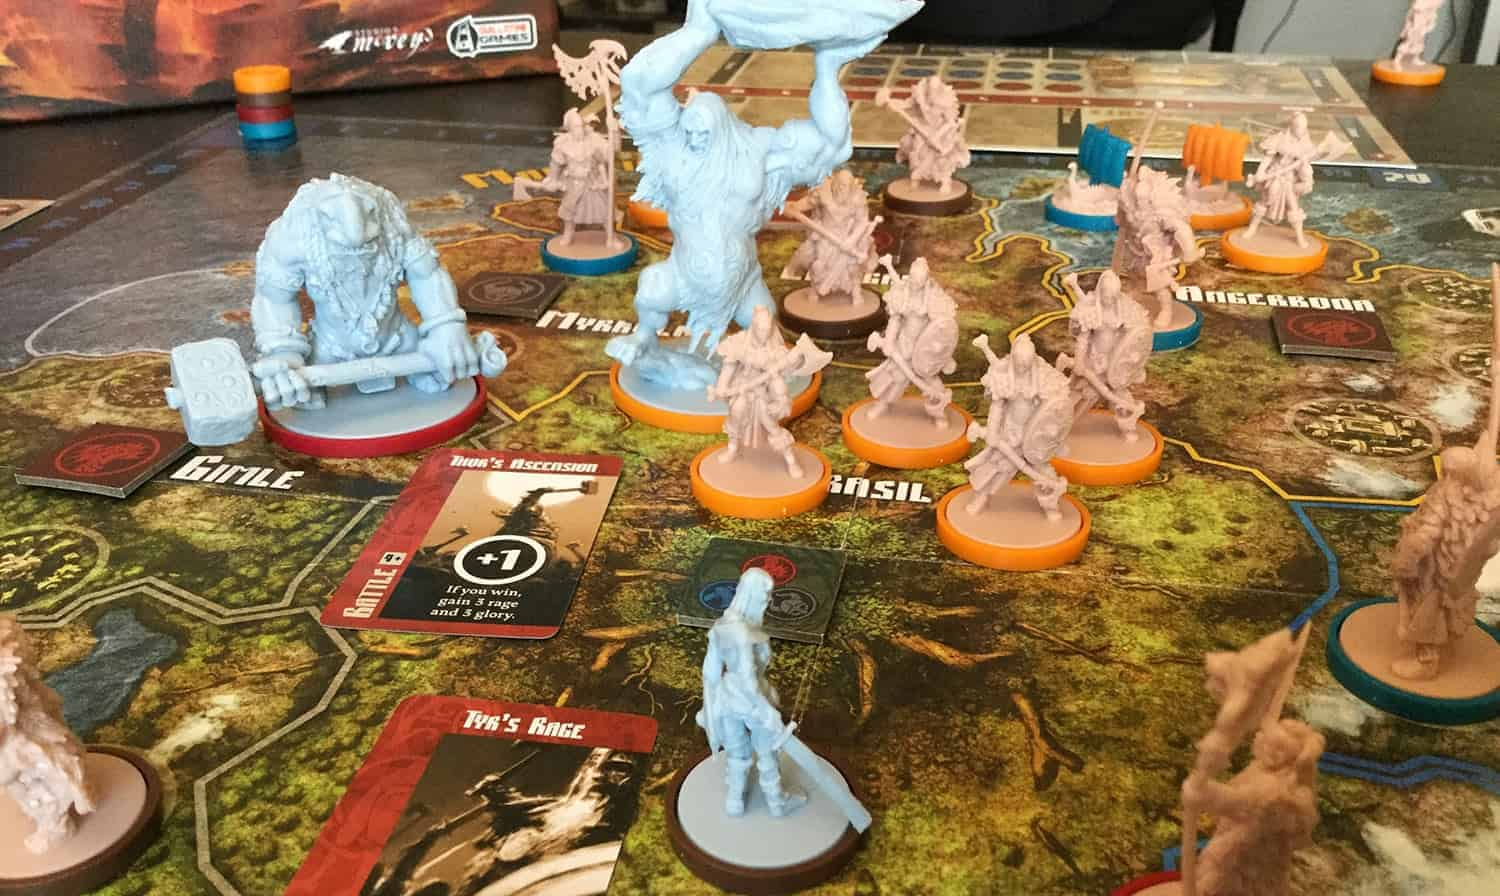 Blood Rage comes with one of the best fantasy board game miniatures around!